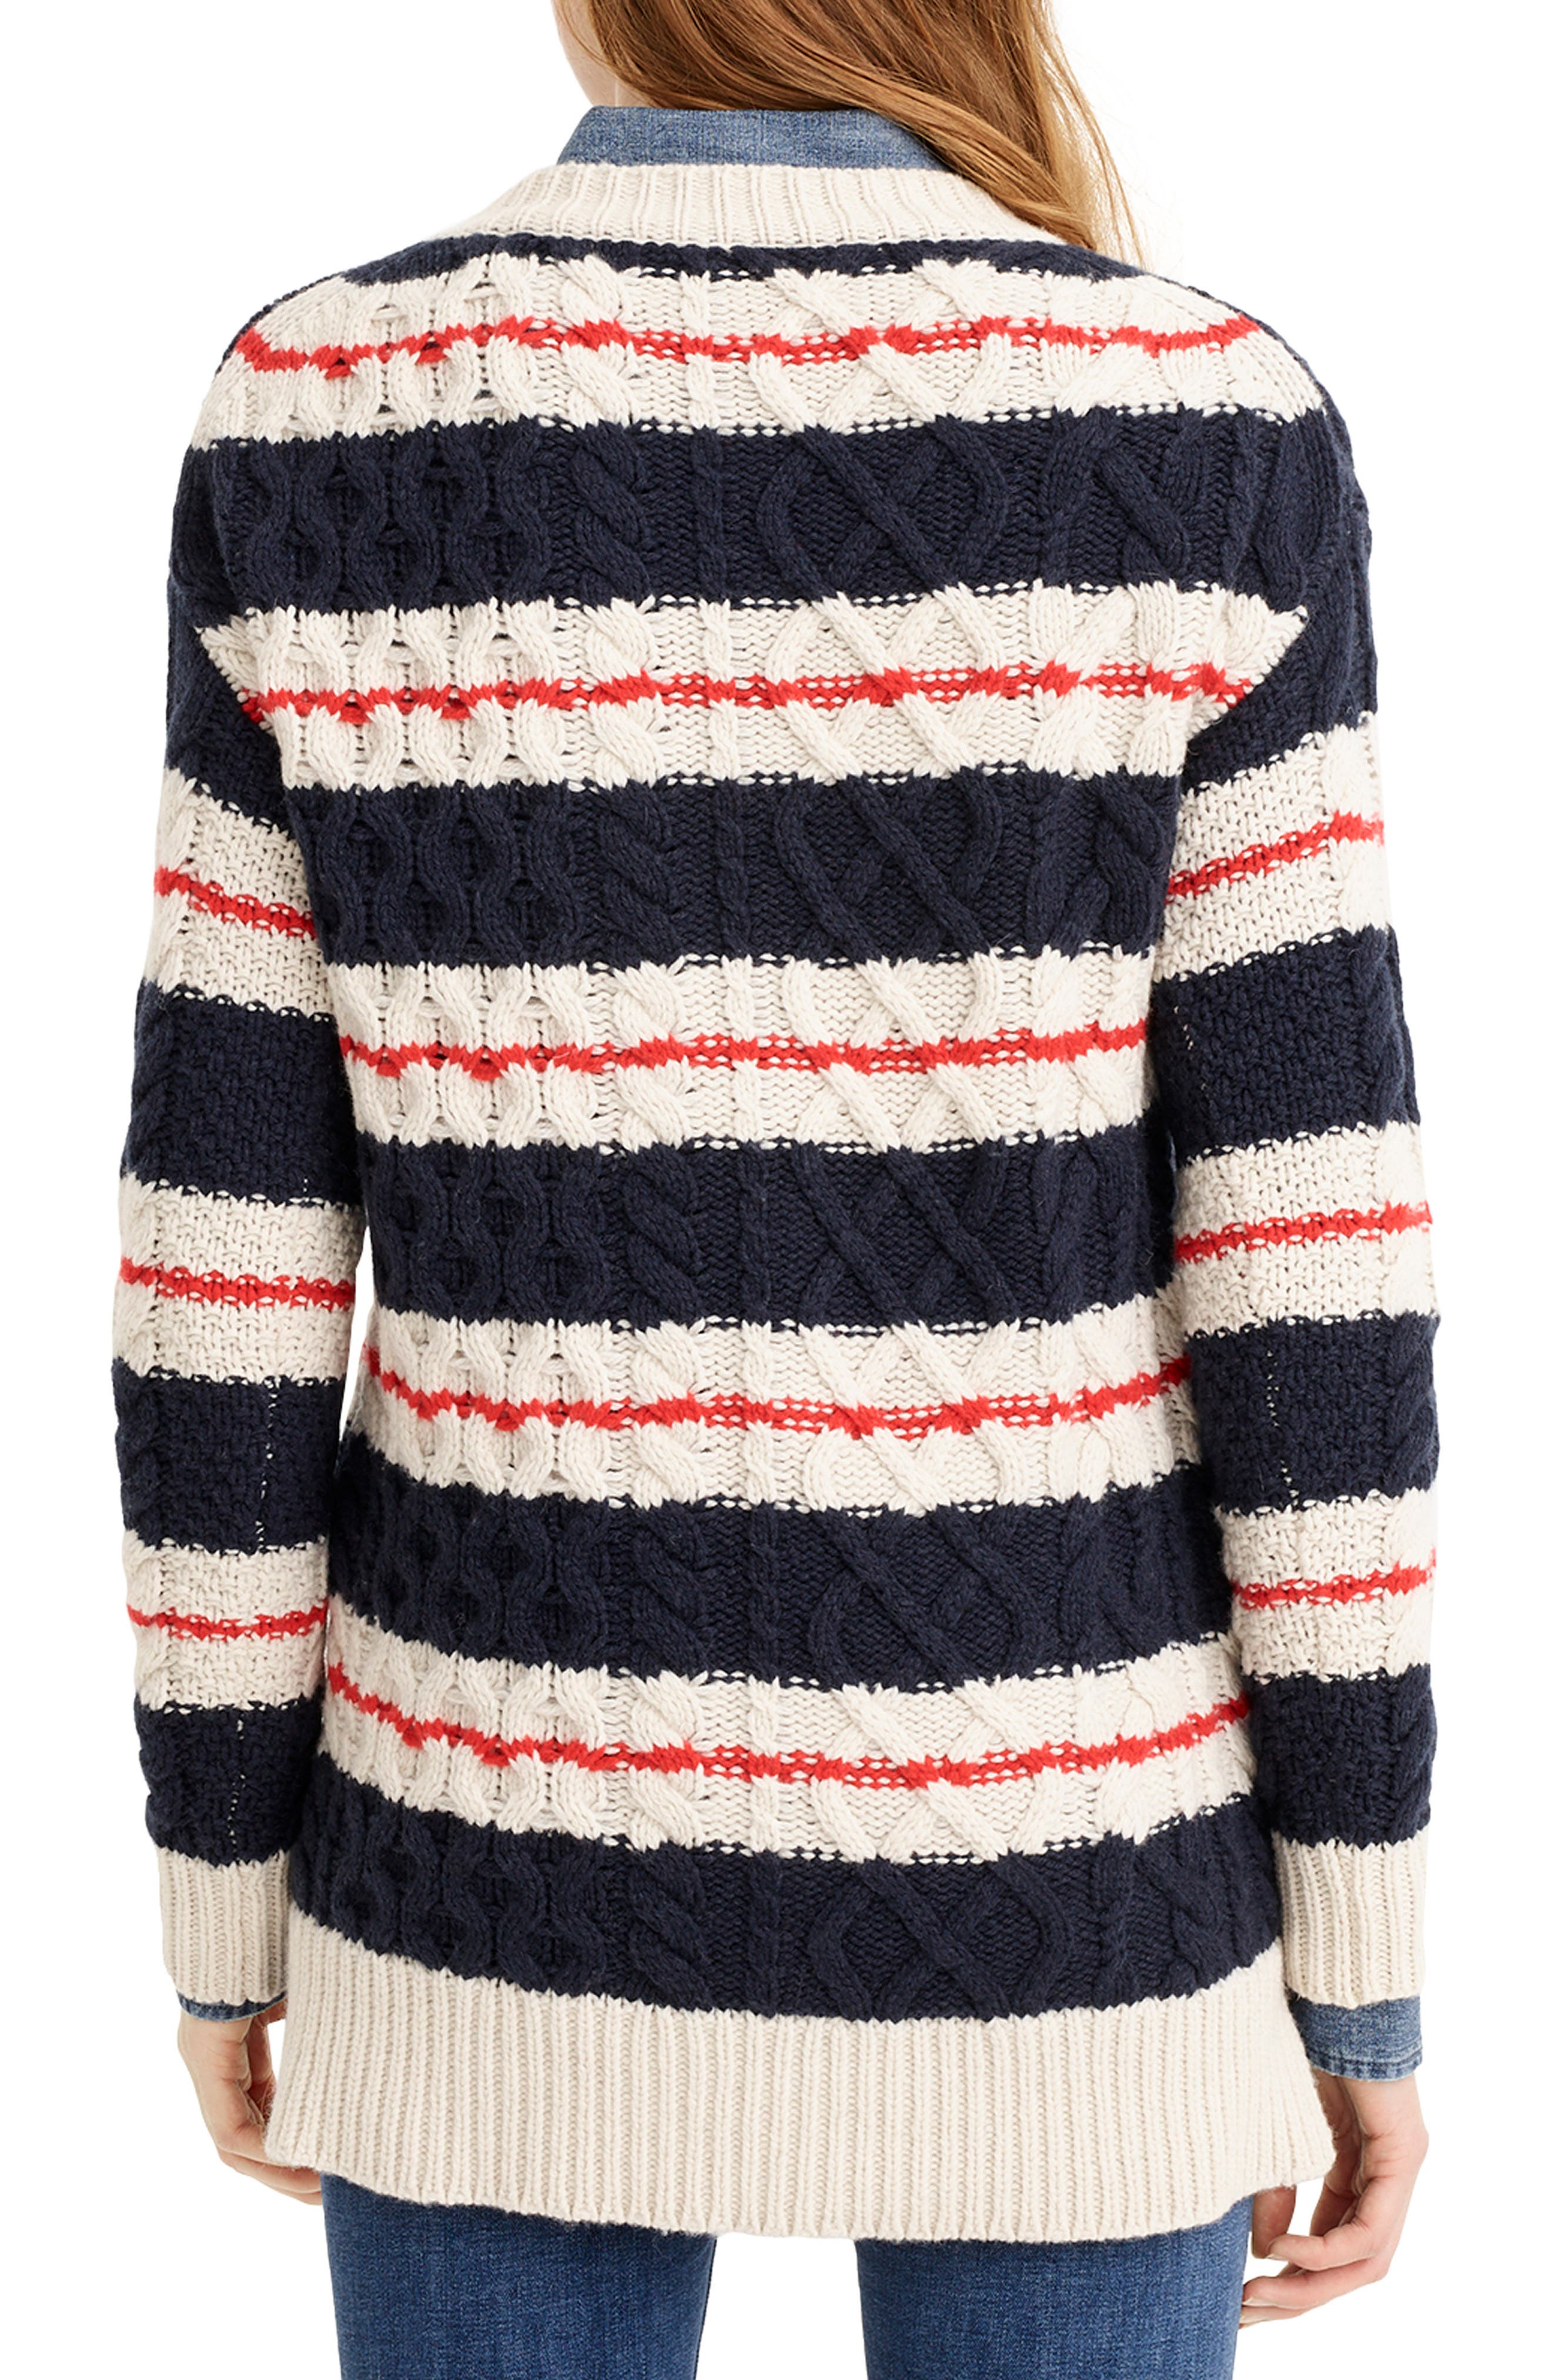 J.CREW, Stripe Cable Knit Tunic Sweater, Alternate thumbnail 2, color, 400